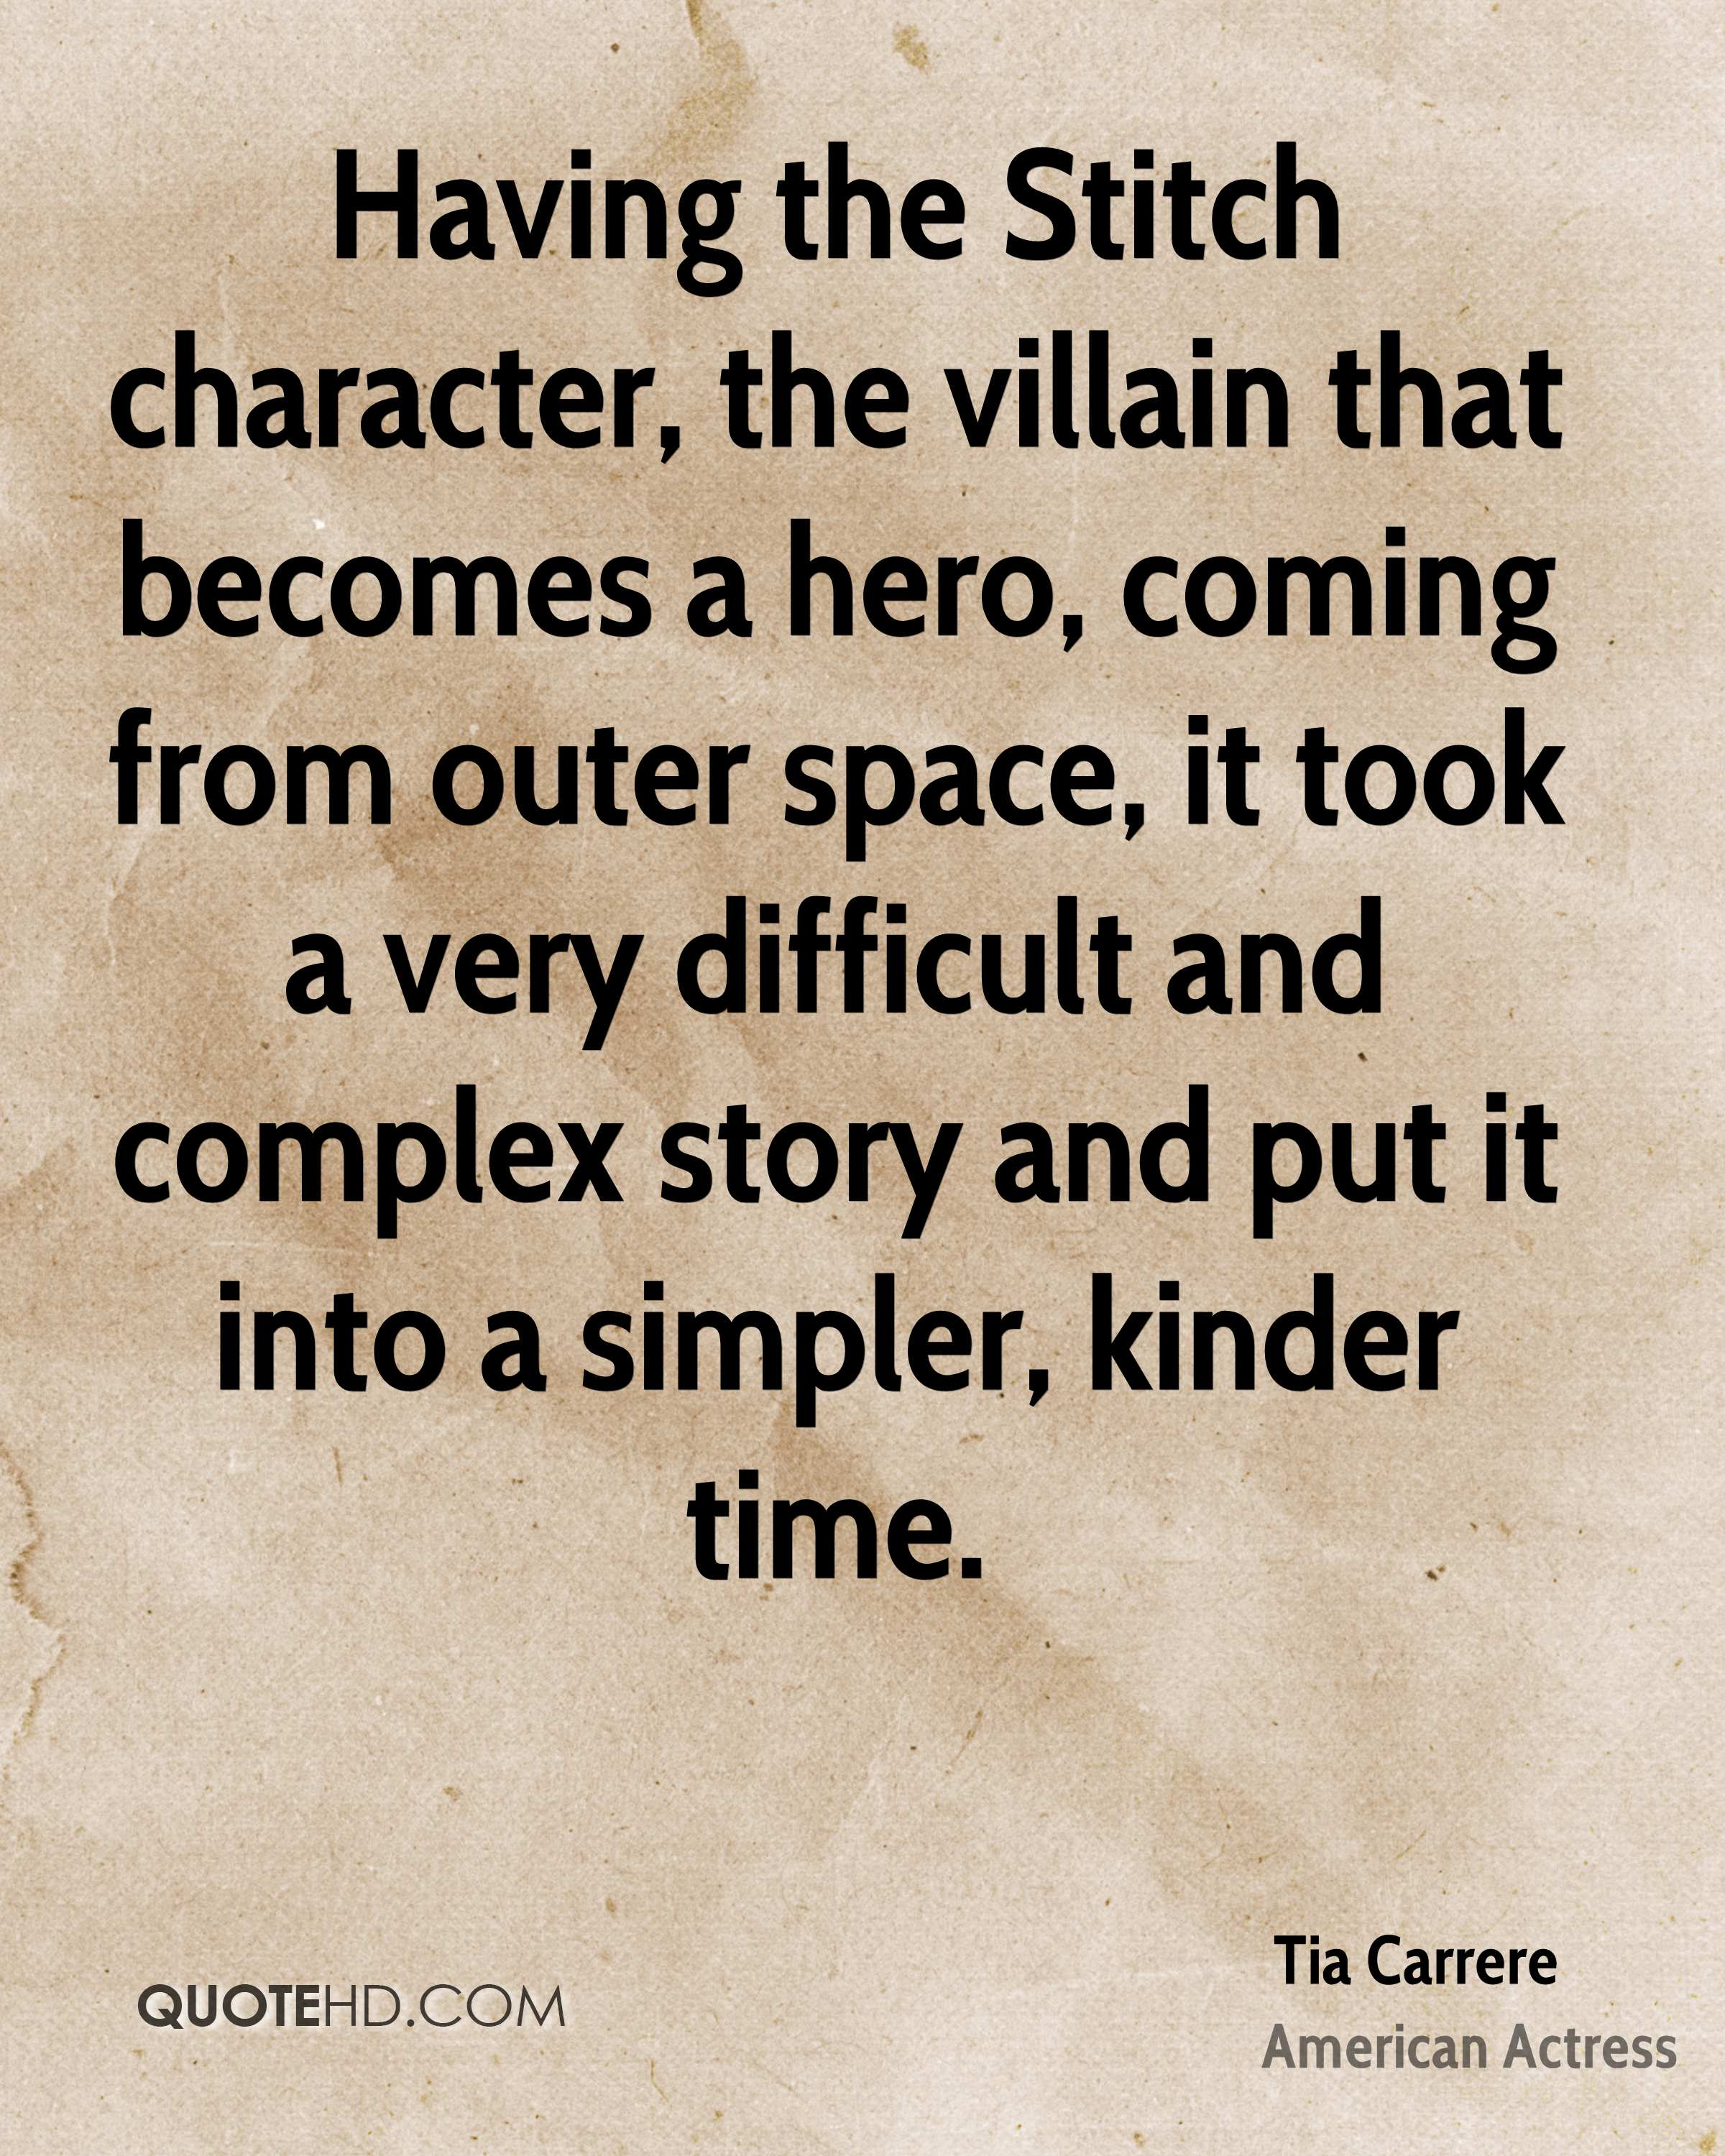 Having the Stitch character, the villain that becomes a hero, coming from outer space, it took a very difficult and complex story and put it into a simpler, kinder time.